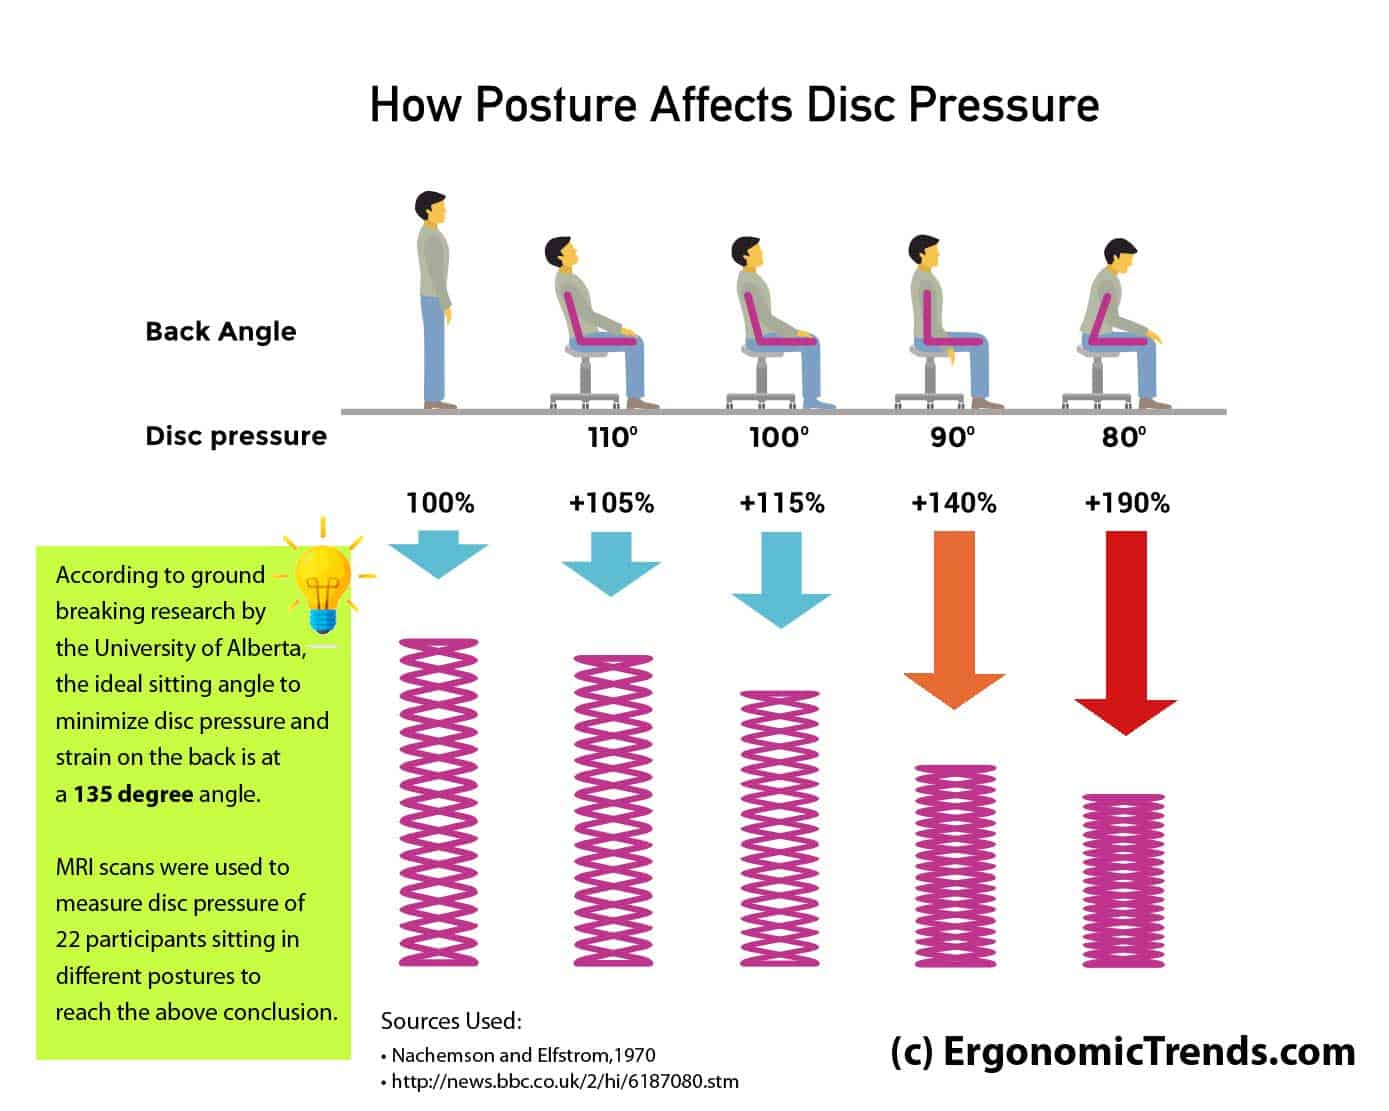 ergonomic chair angle flipping chairs vine best office for back pain what the research tells pressure on disc and based sitting posture 135 is ideal